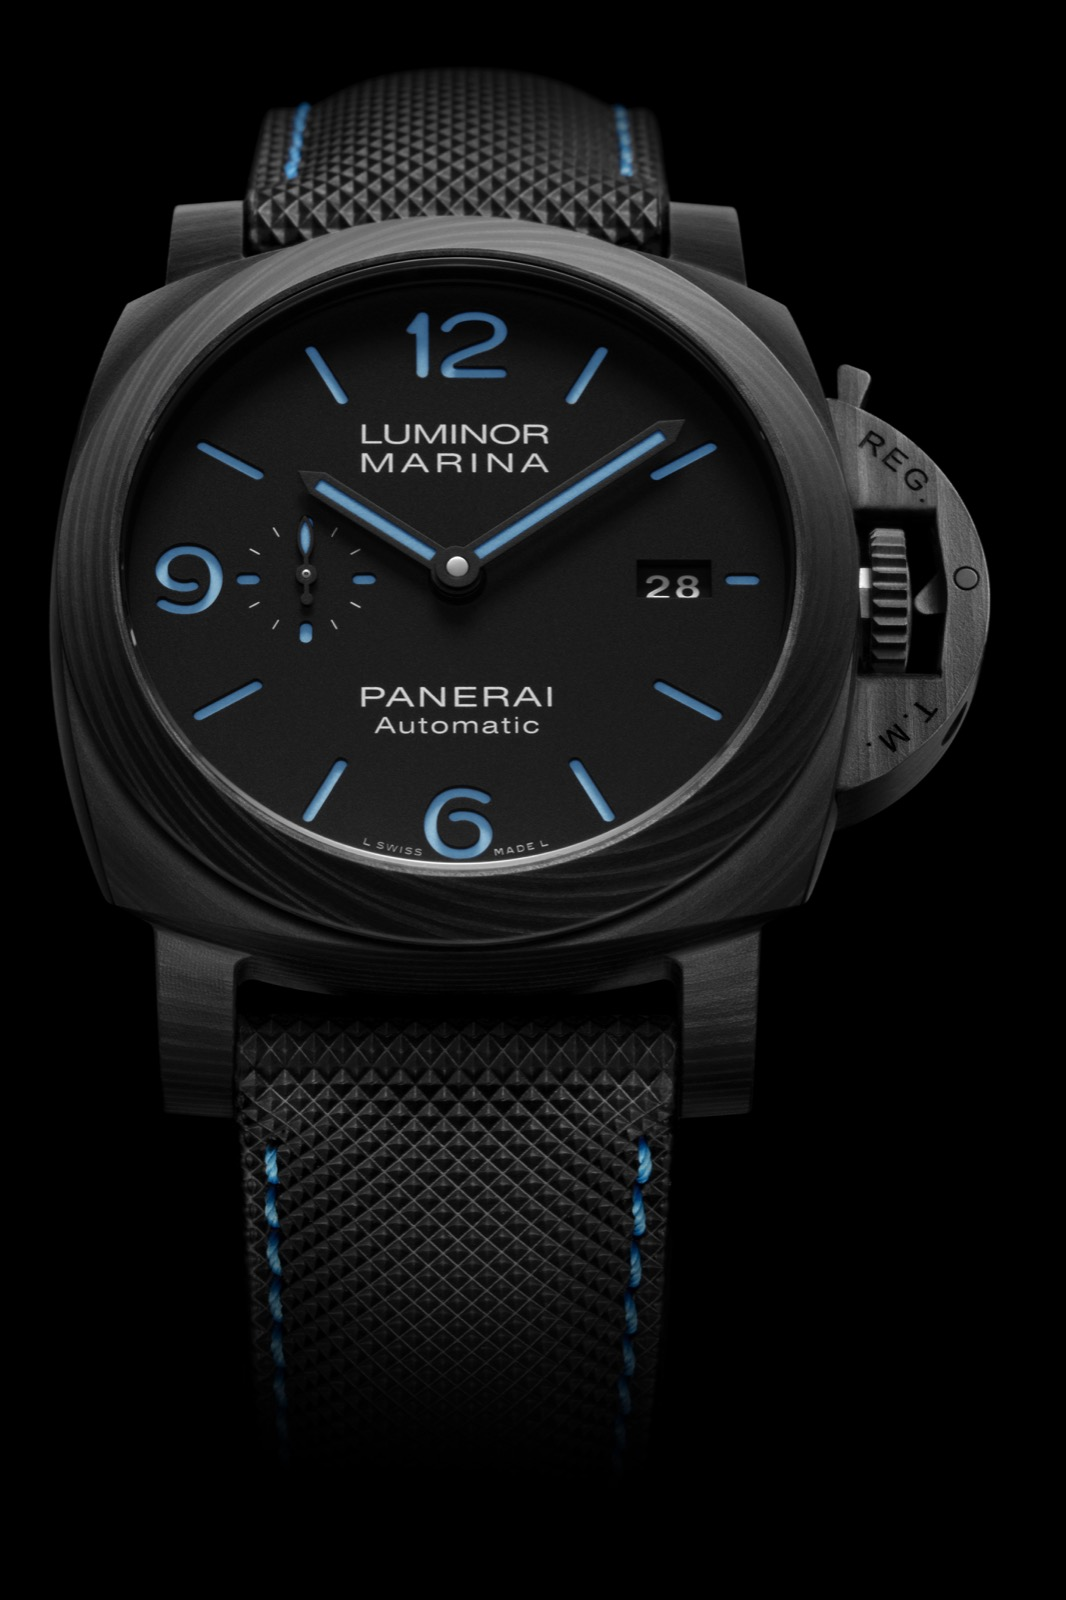 Panerai Luminor Marina Carbotech PAM 1661